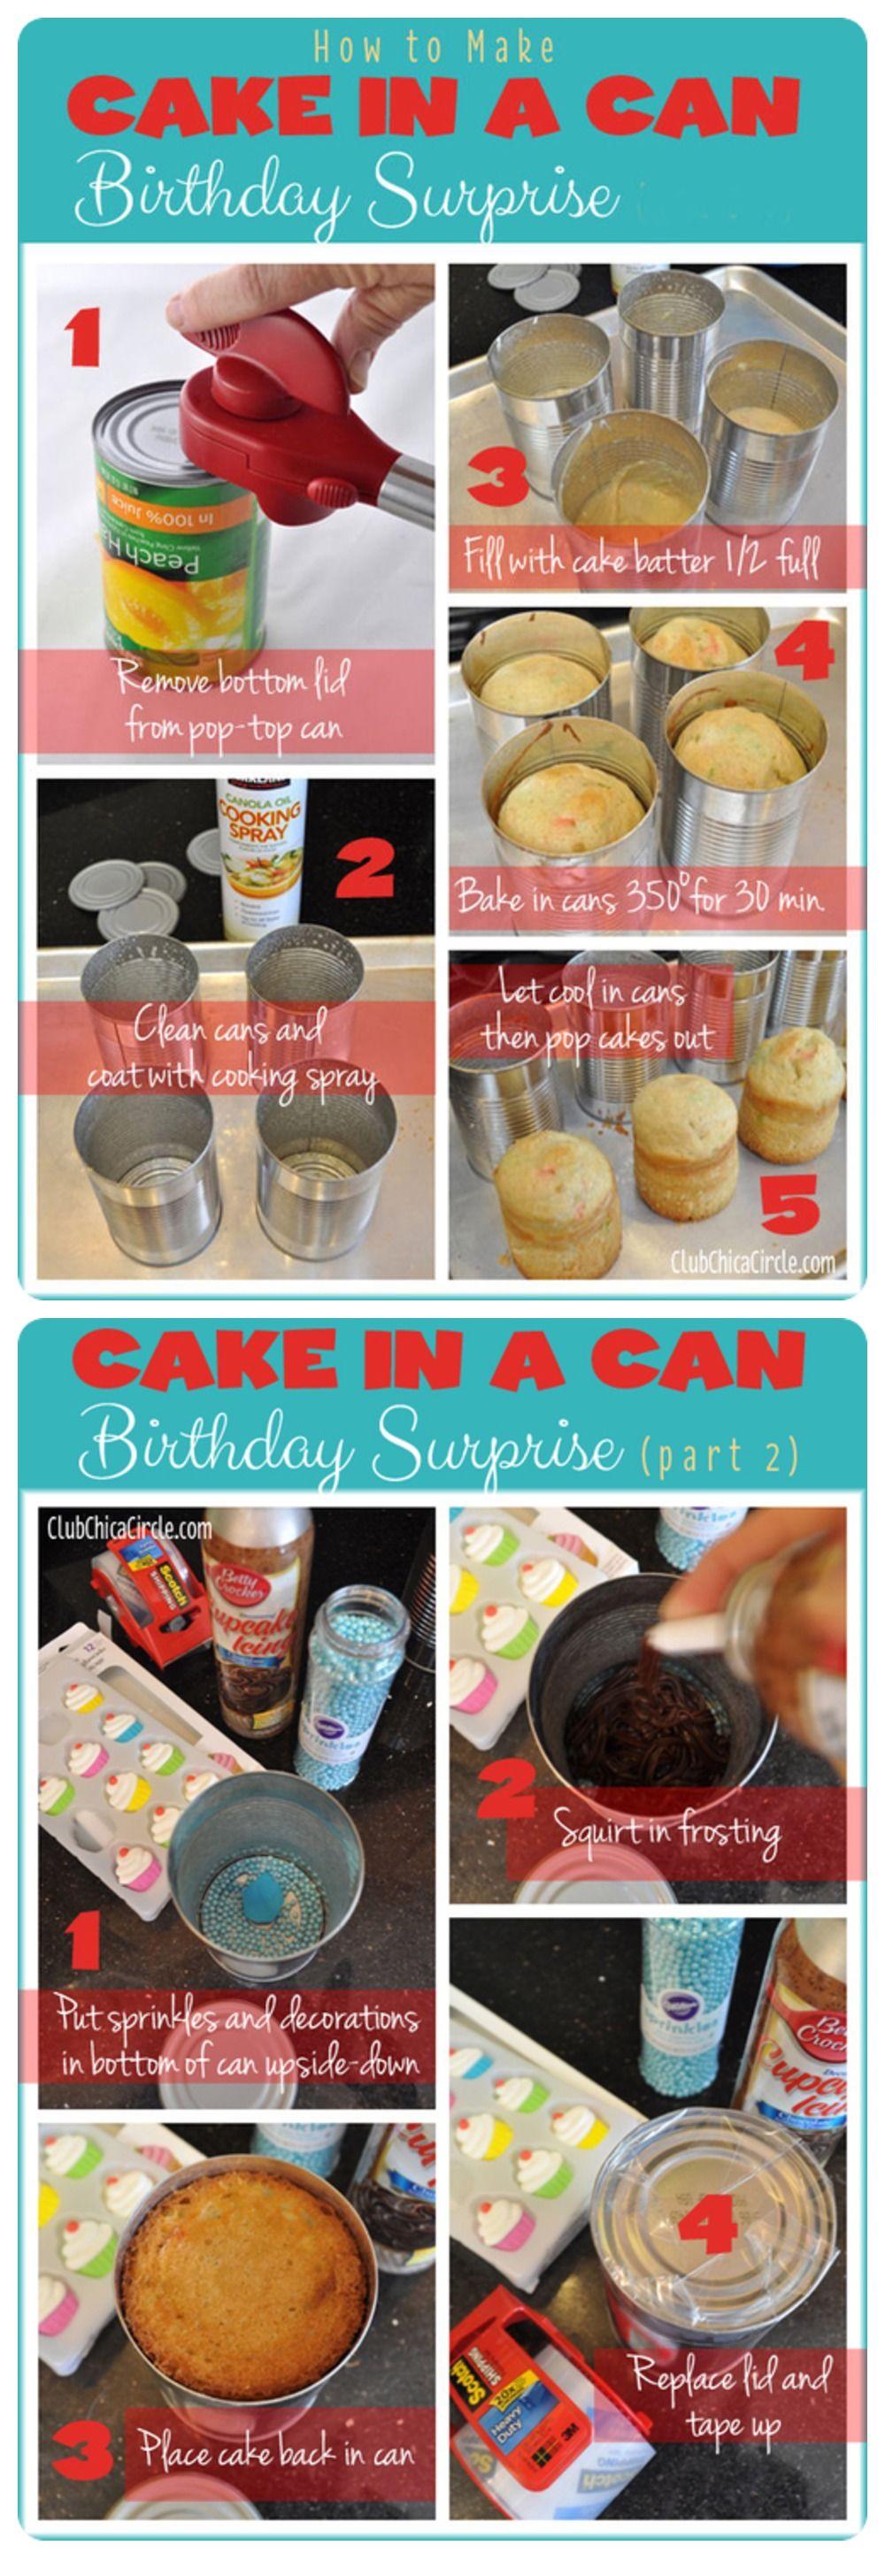 How To Make Cake In A Can Pictures Photos And Images For Facebook